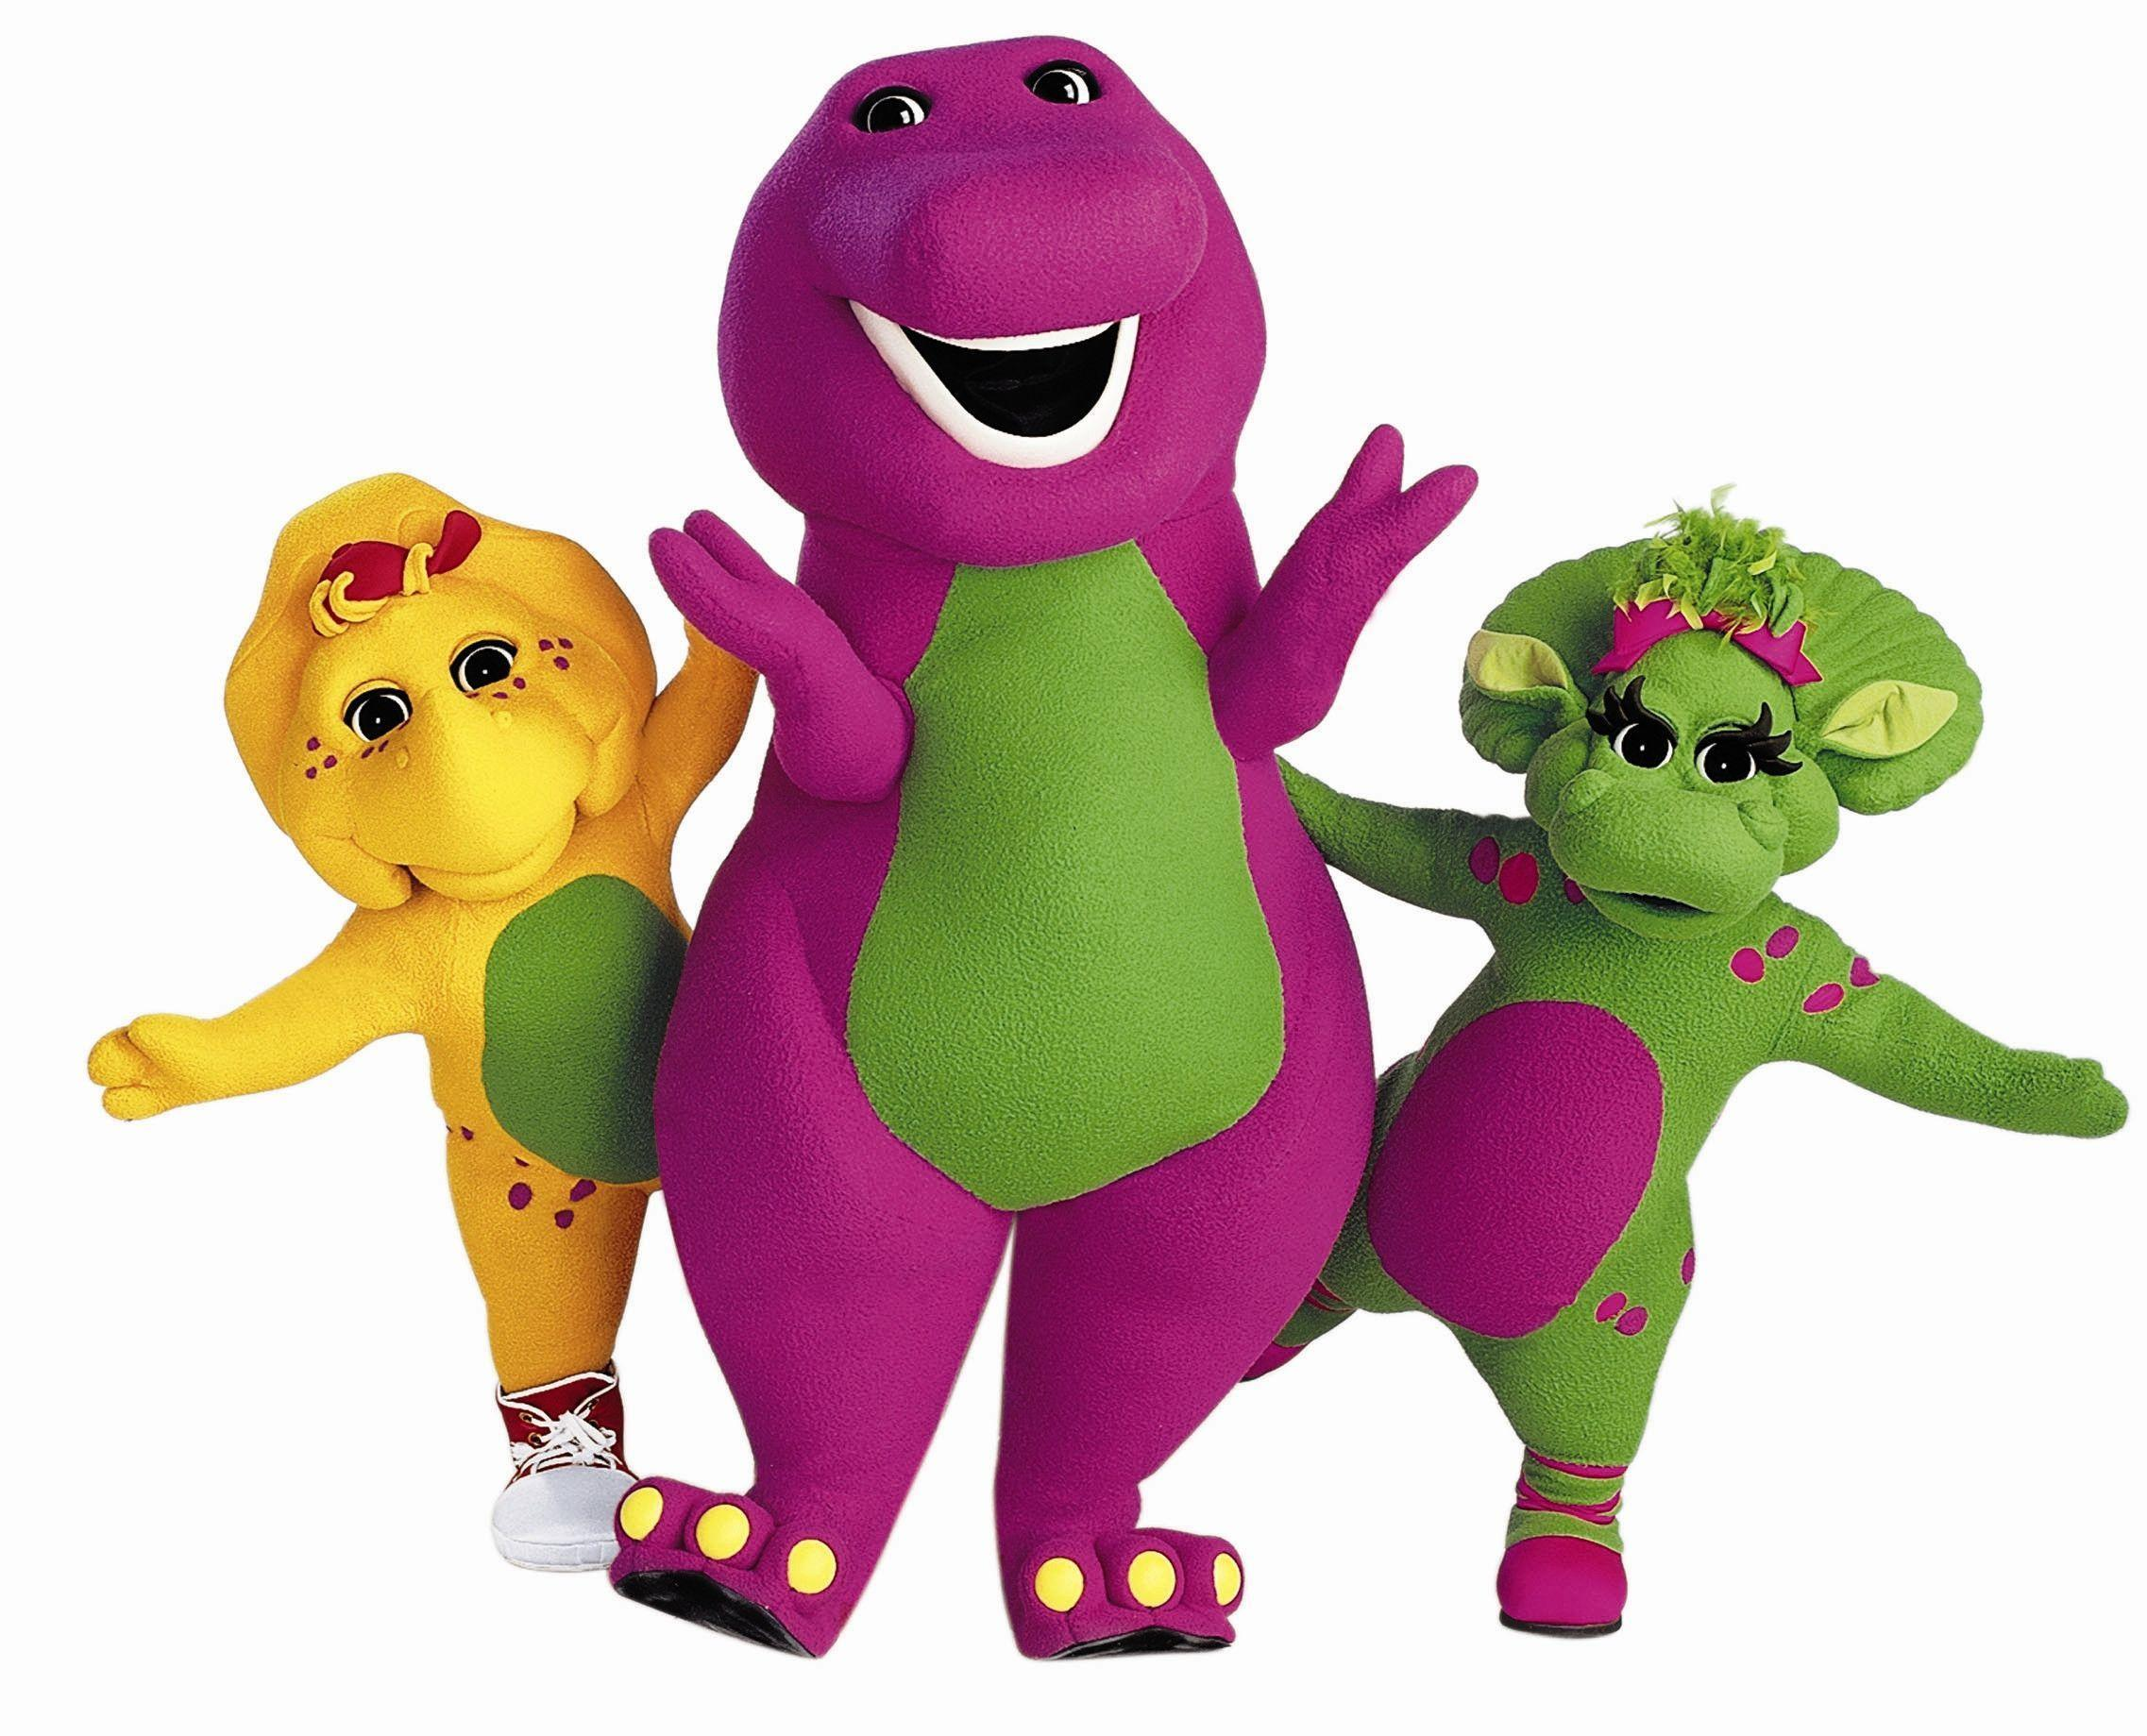 Barney and Friends Christmas Wallpapers Downloads for Mobile Phones